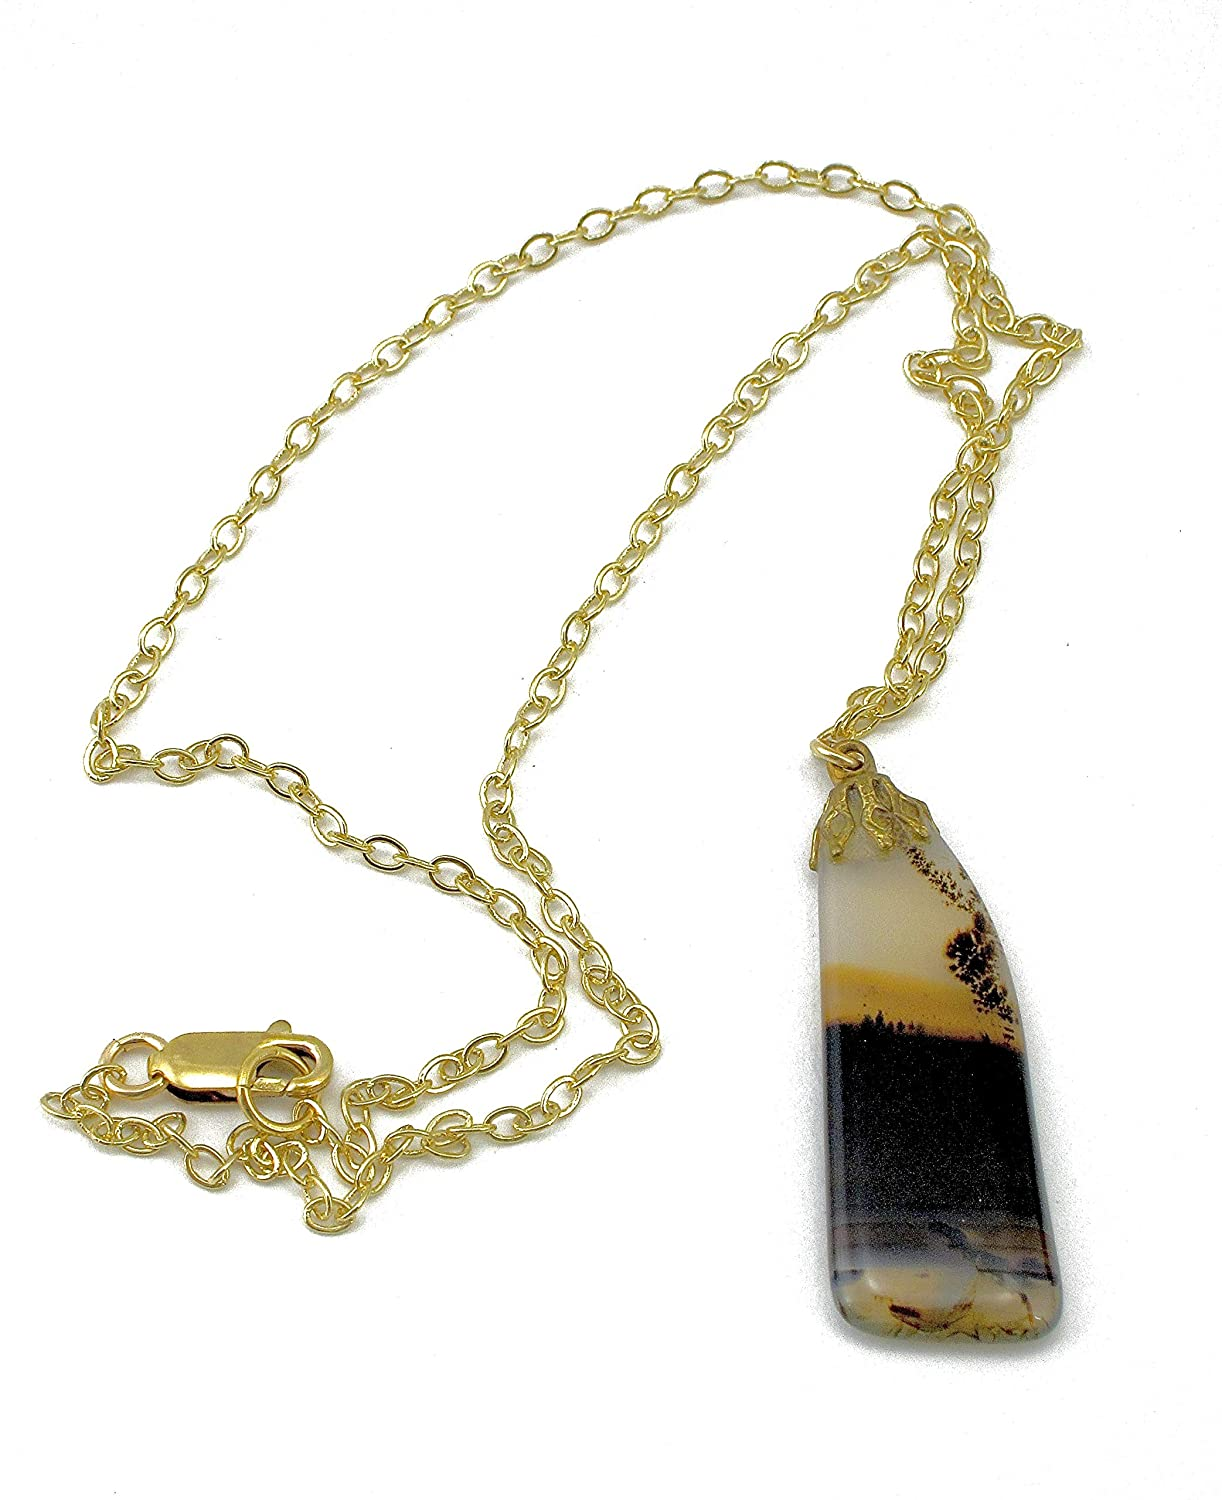 Antique Agate Pendant Necklace San Max 74% OFF Francisco Mall